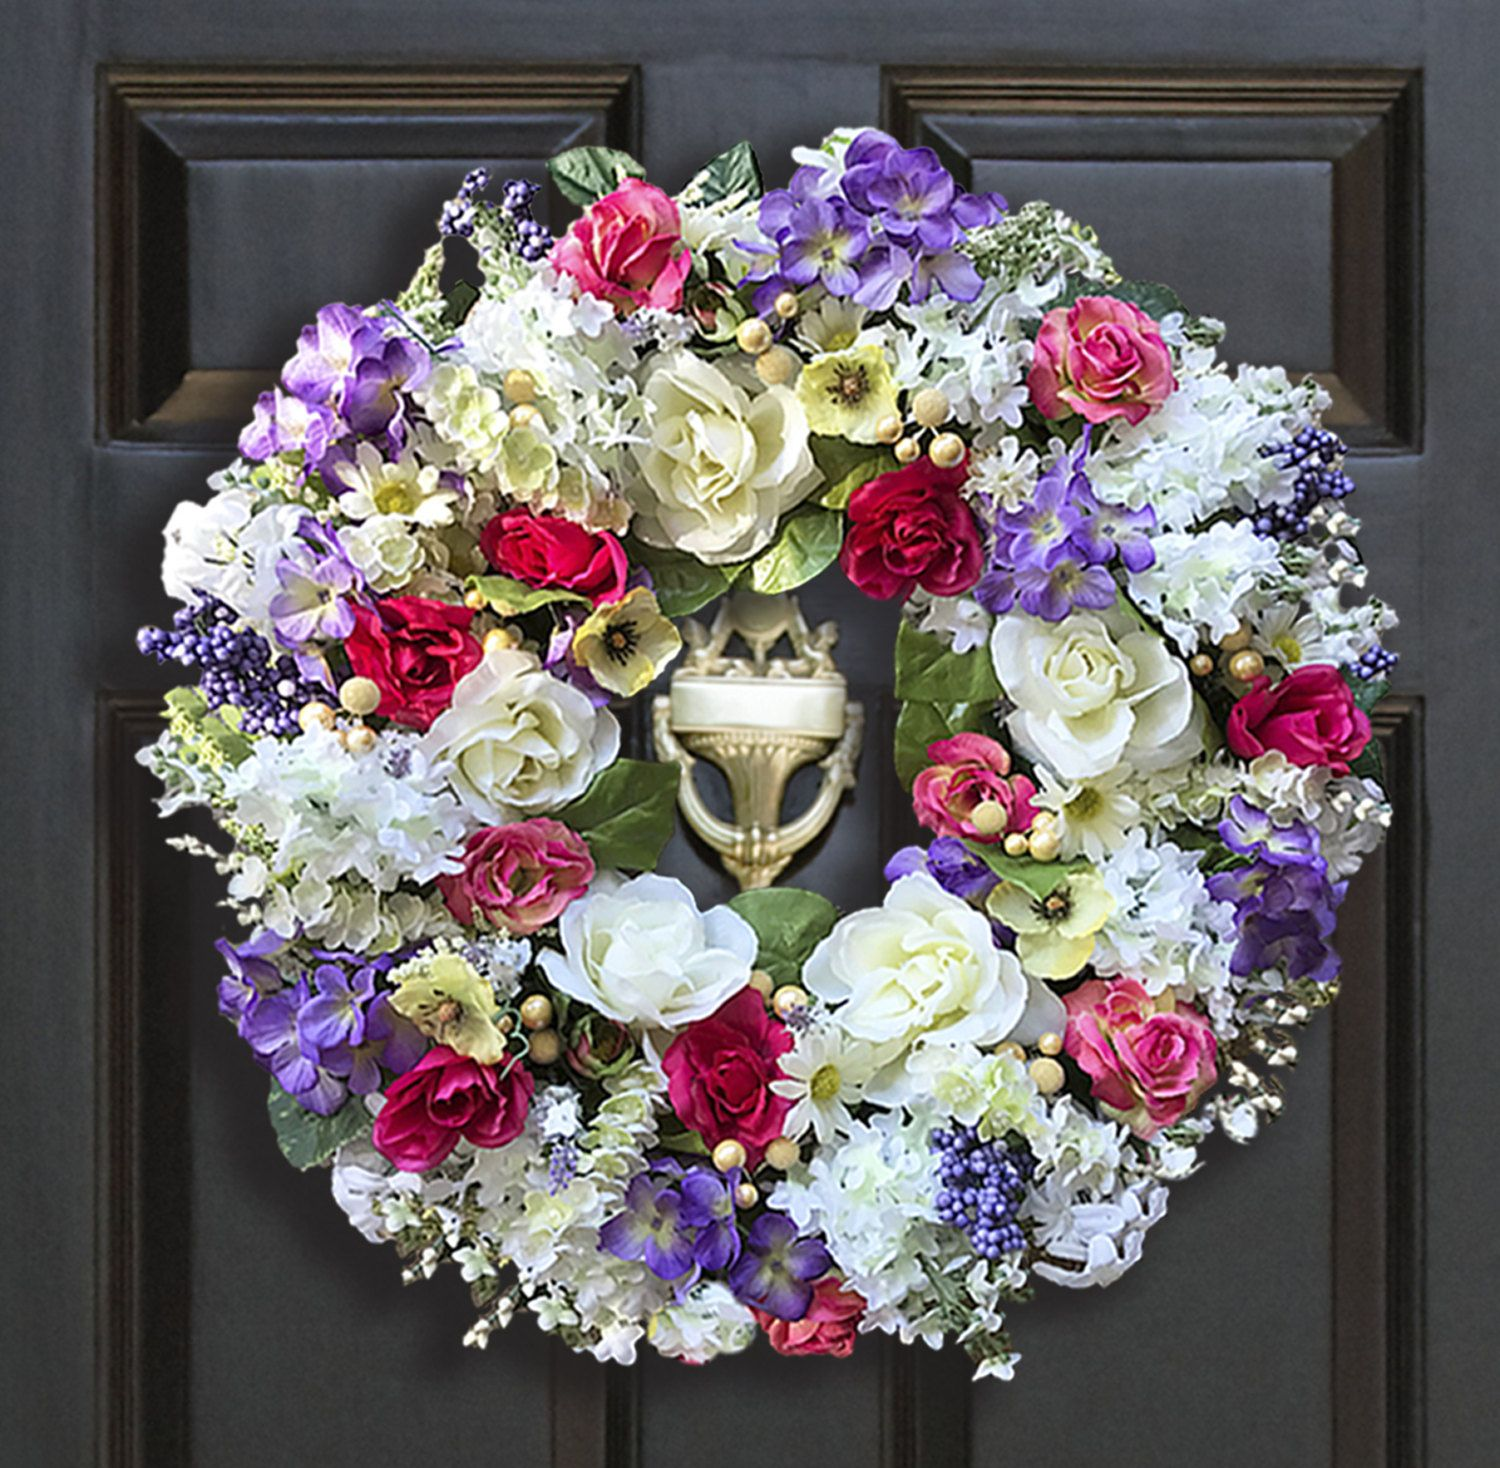 Beautiful Wreaths | Spring Wreaths | Floral Wreaths | Colorful Wreaths | Front  Door Wreaths By